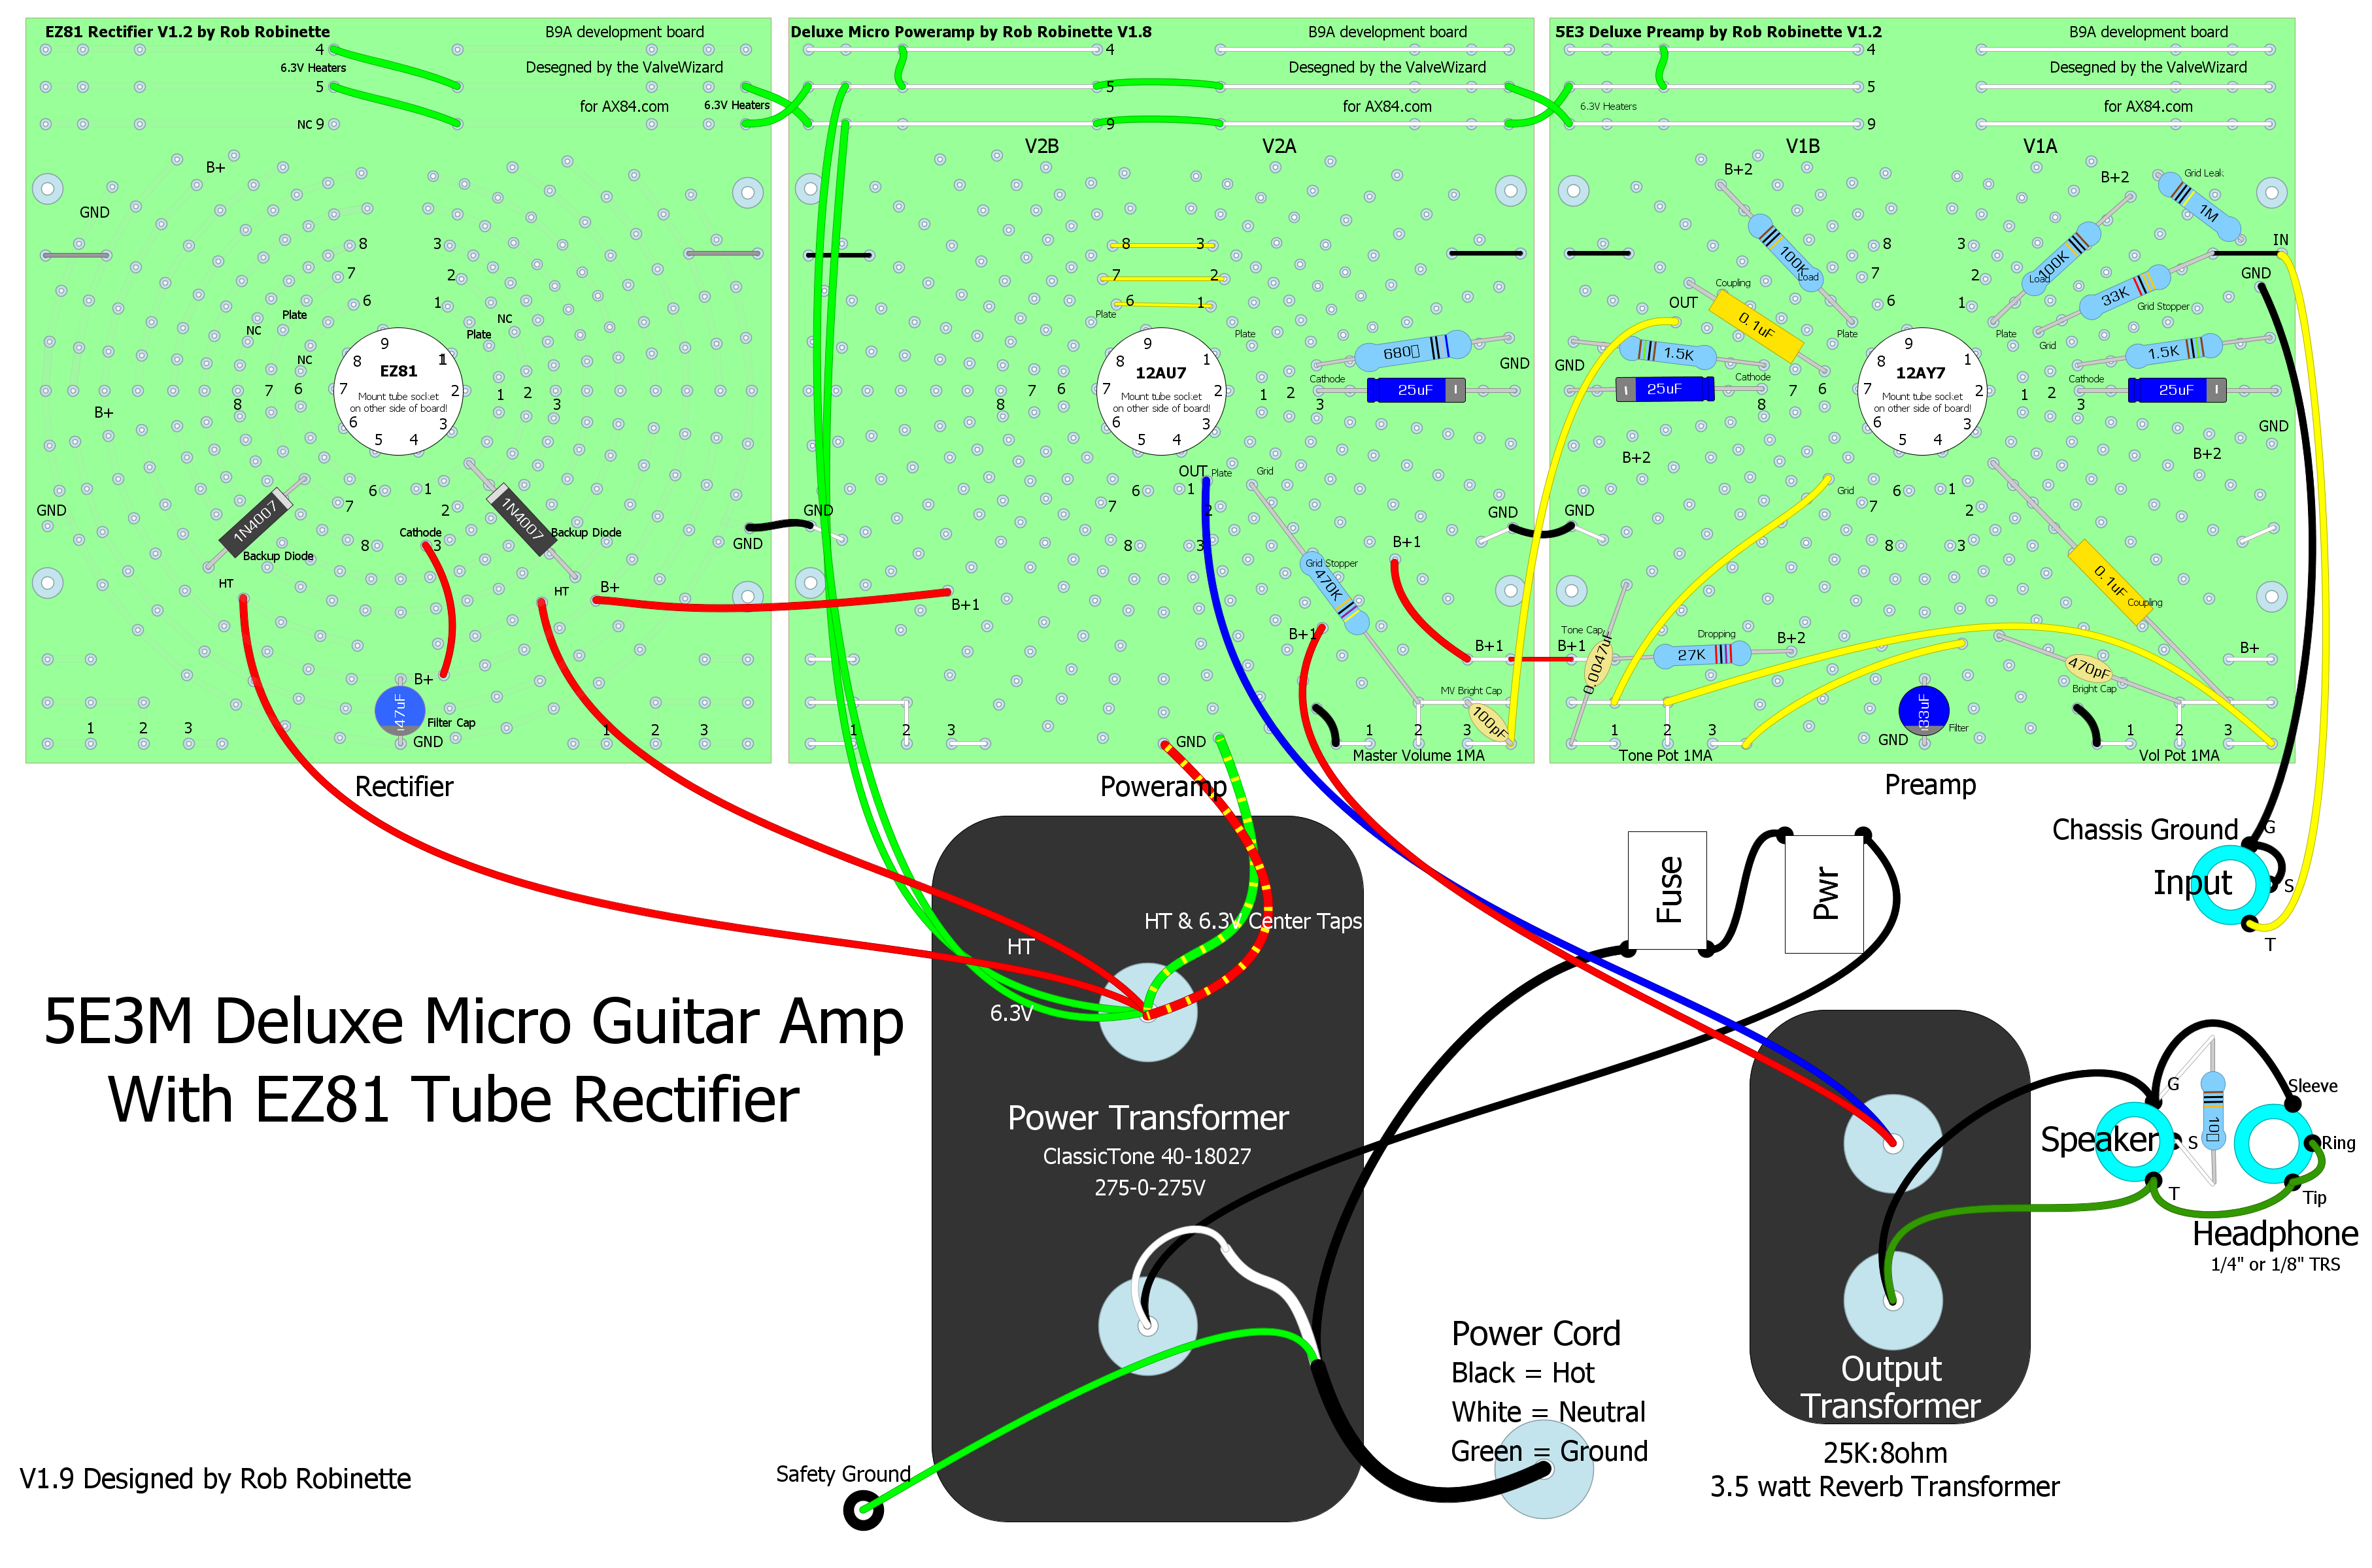 Deluxe Micro Wiring Questions On New Guitar Telecaster Forum The Complete With Tube Rectification Using Three B9a Boards